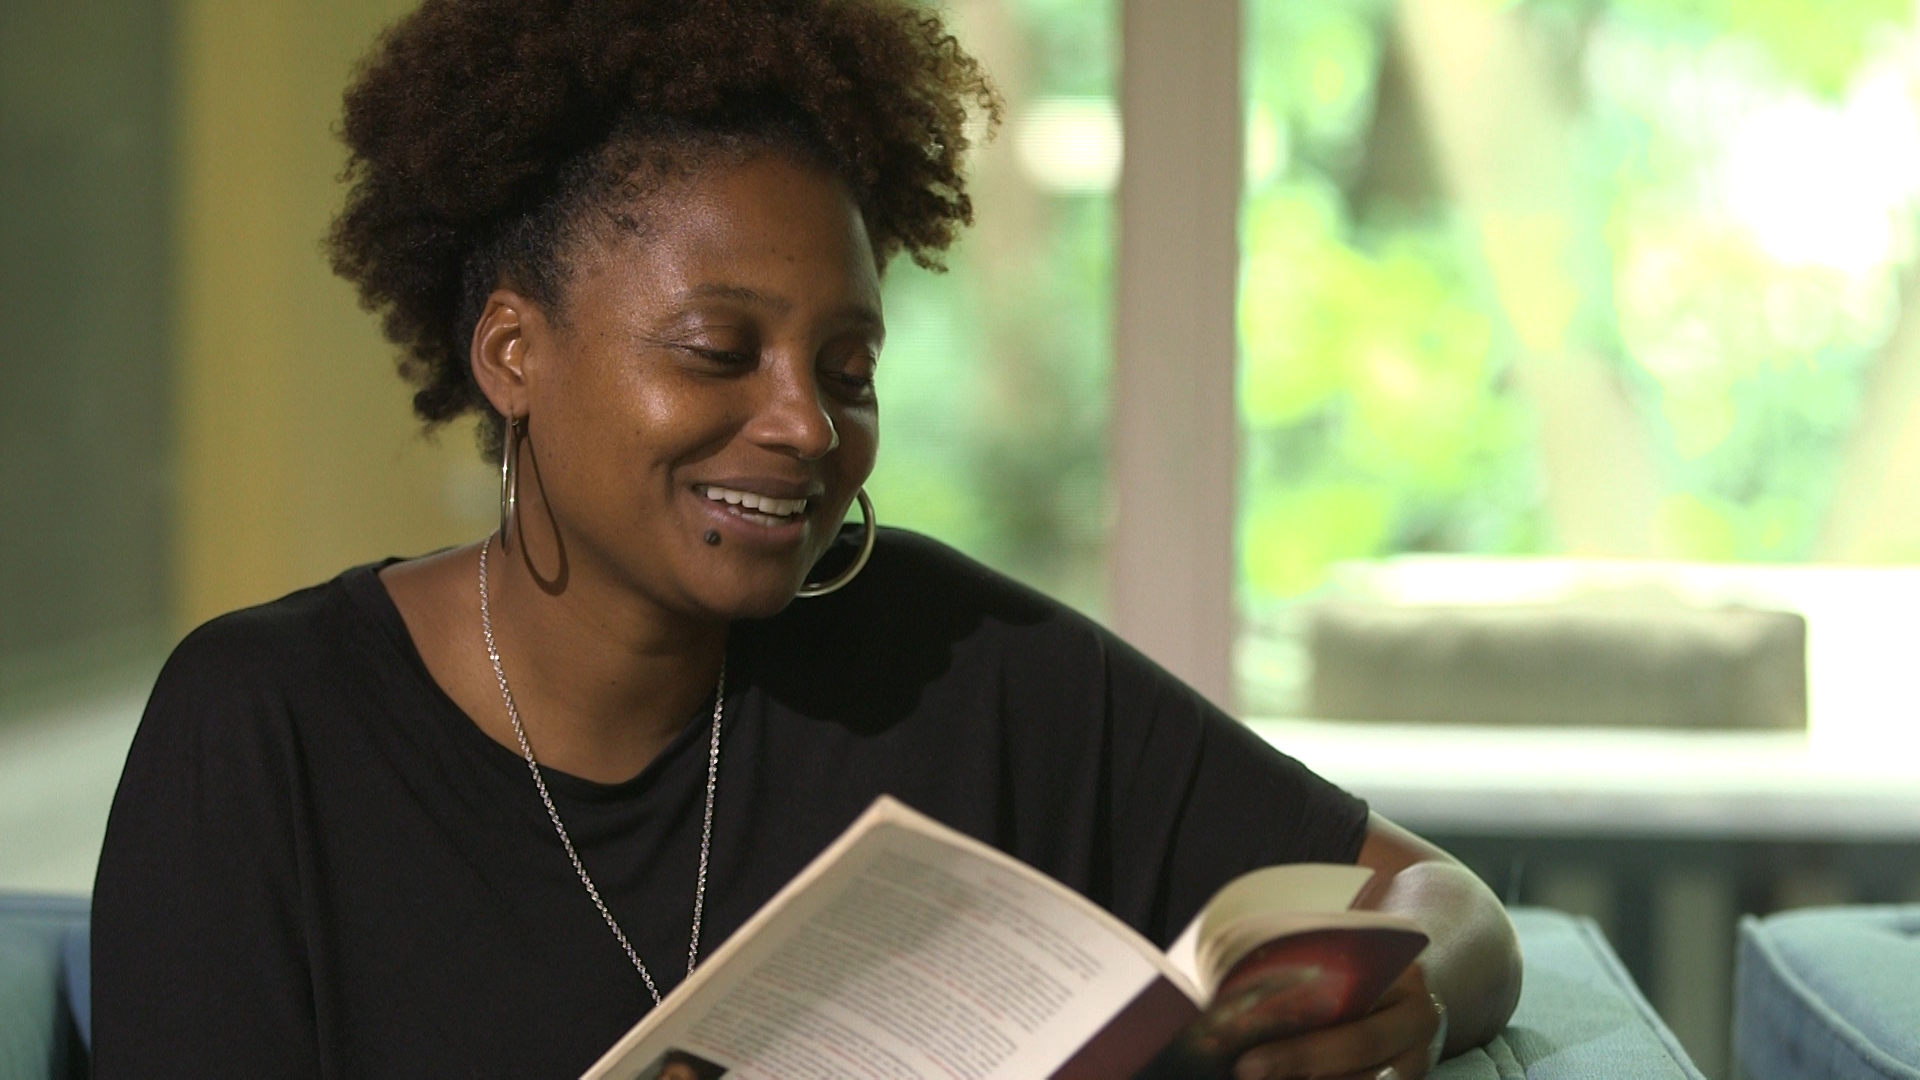 Tracy K. Smith: Ghost Writing - Loss has shaped Tracy K. Smith's perspective: as a poet, and as a person.Season 4, Episode 4